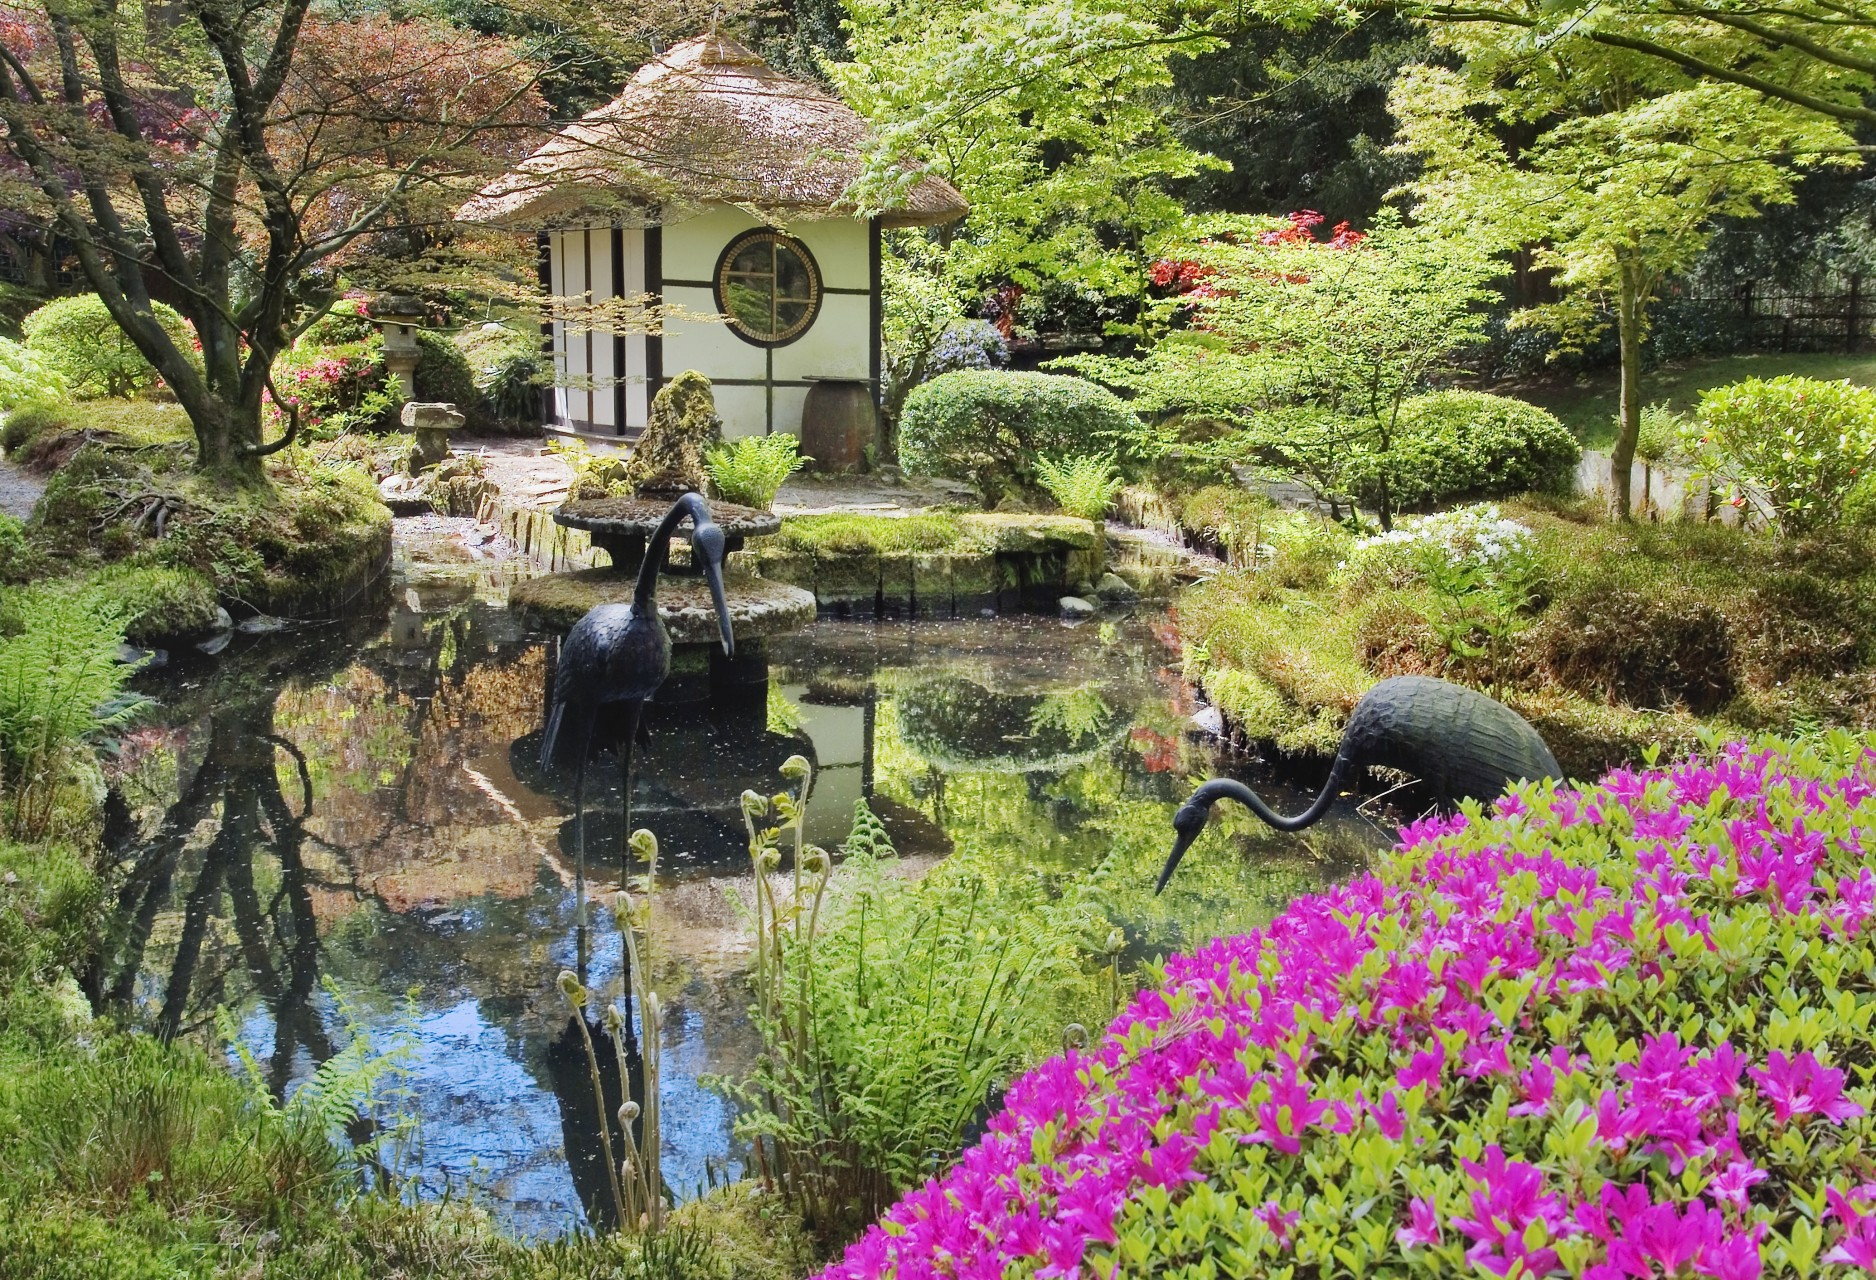 Japanese Garden at Tatton Park